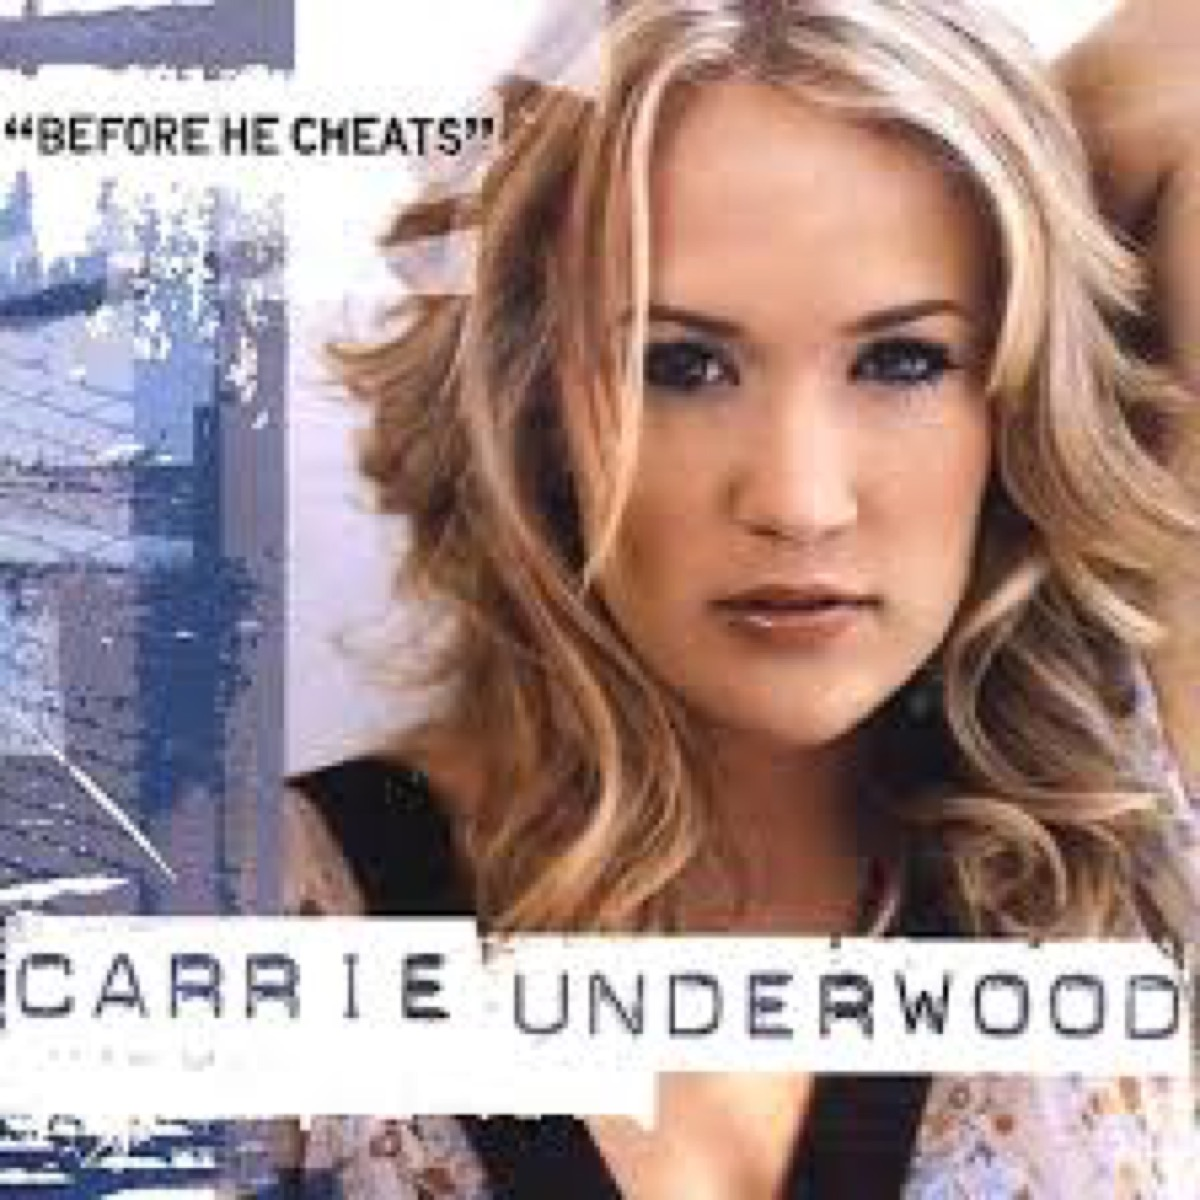 carrie underwood before he cheats single cover